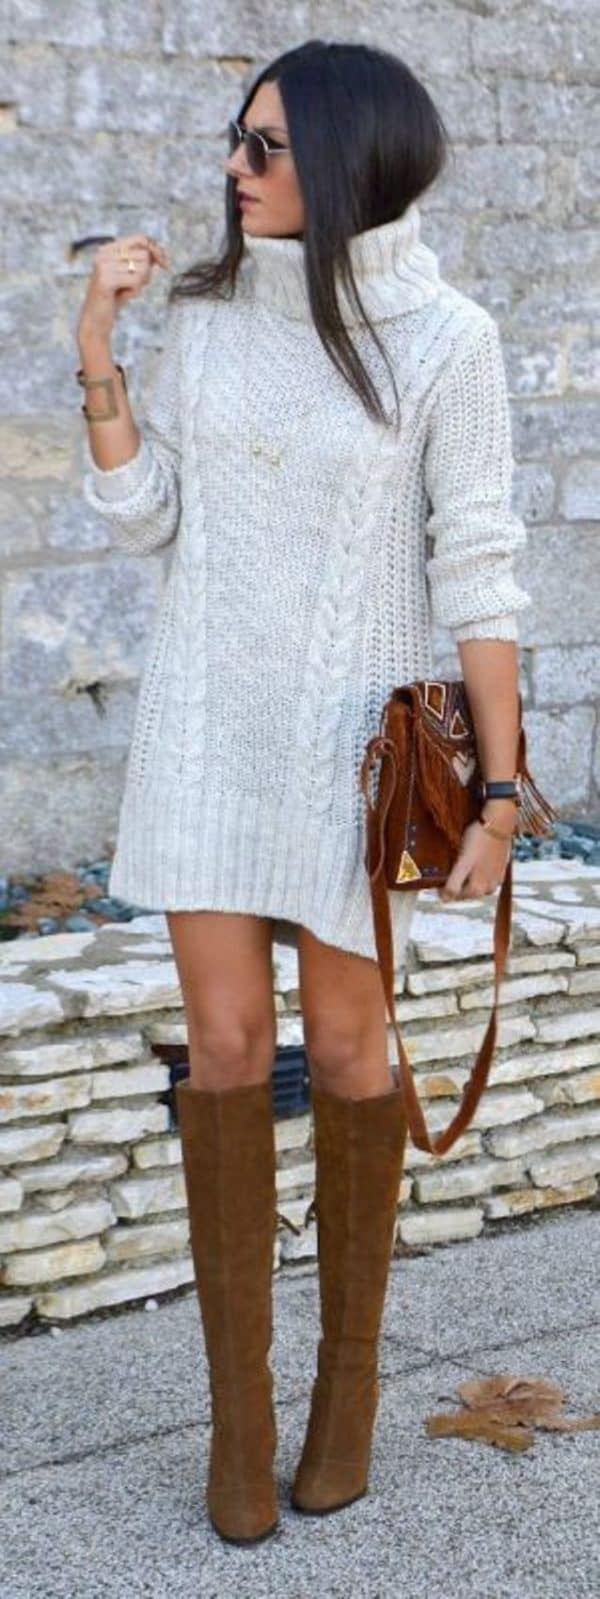 How To Style A Knit Dress To Look Chic